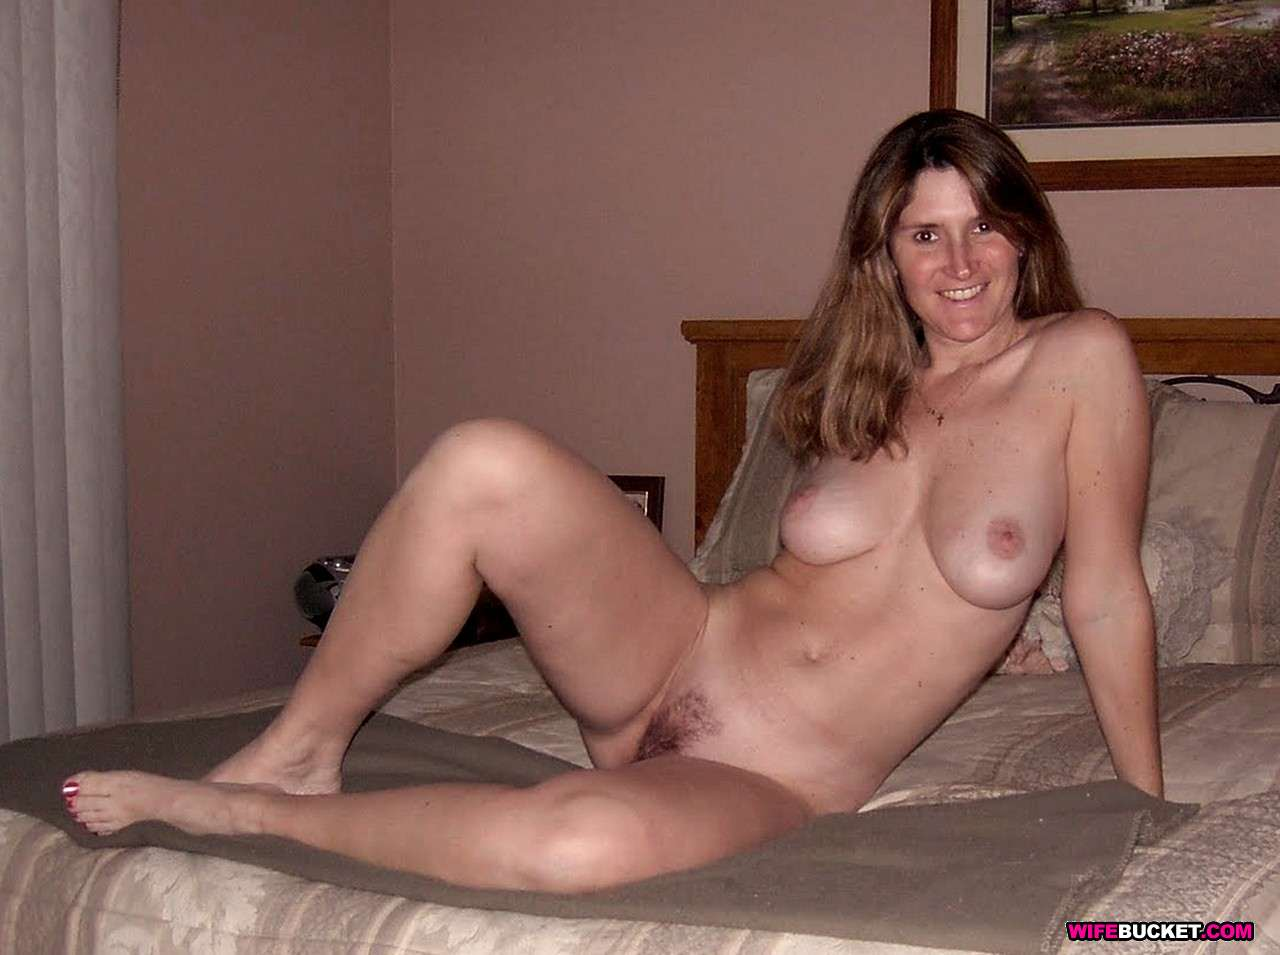 Mature amature wives naked